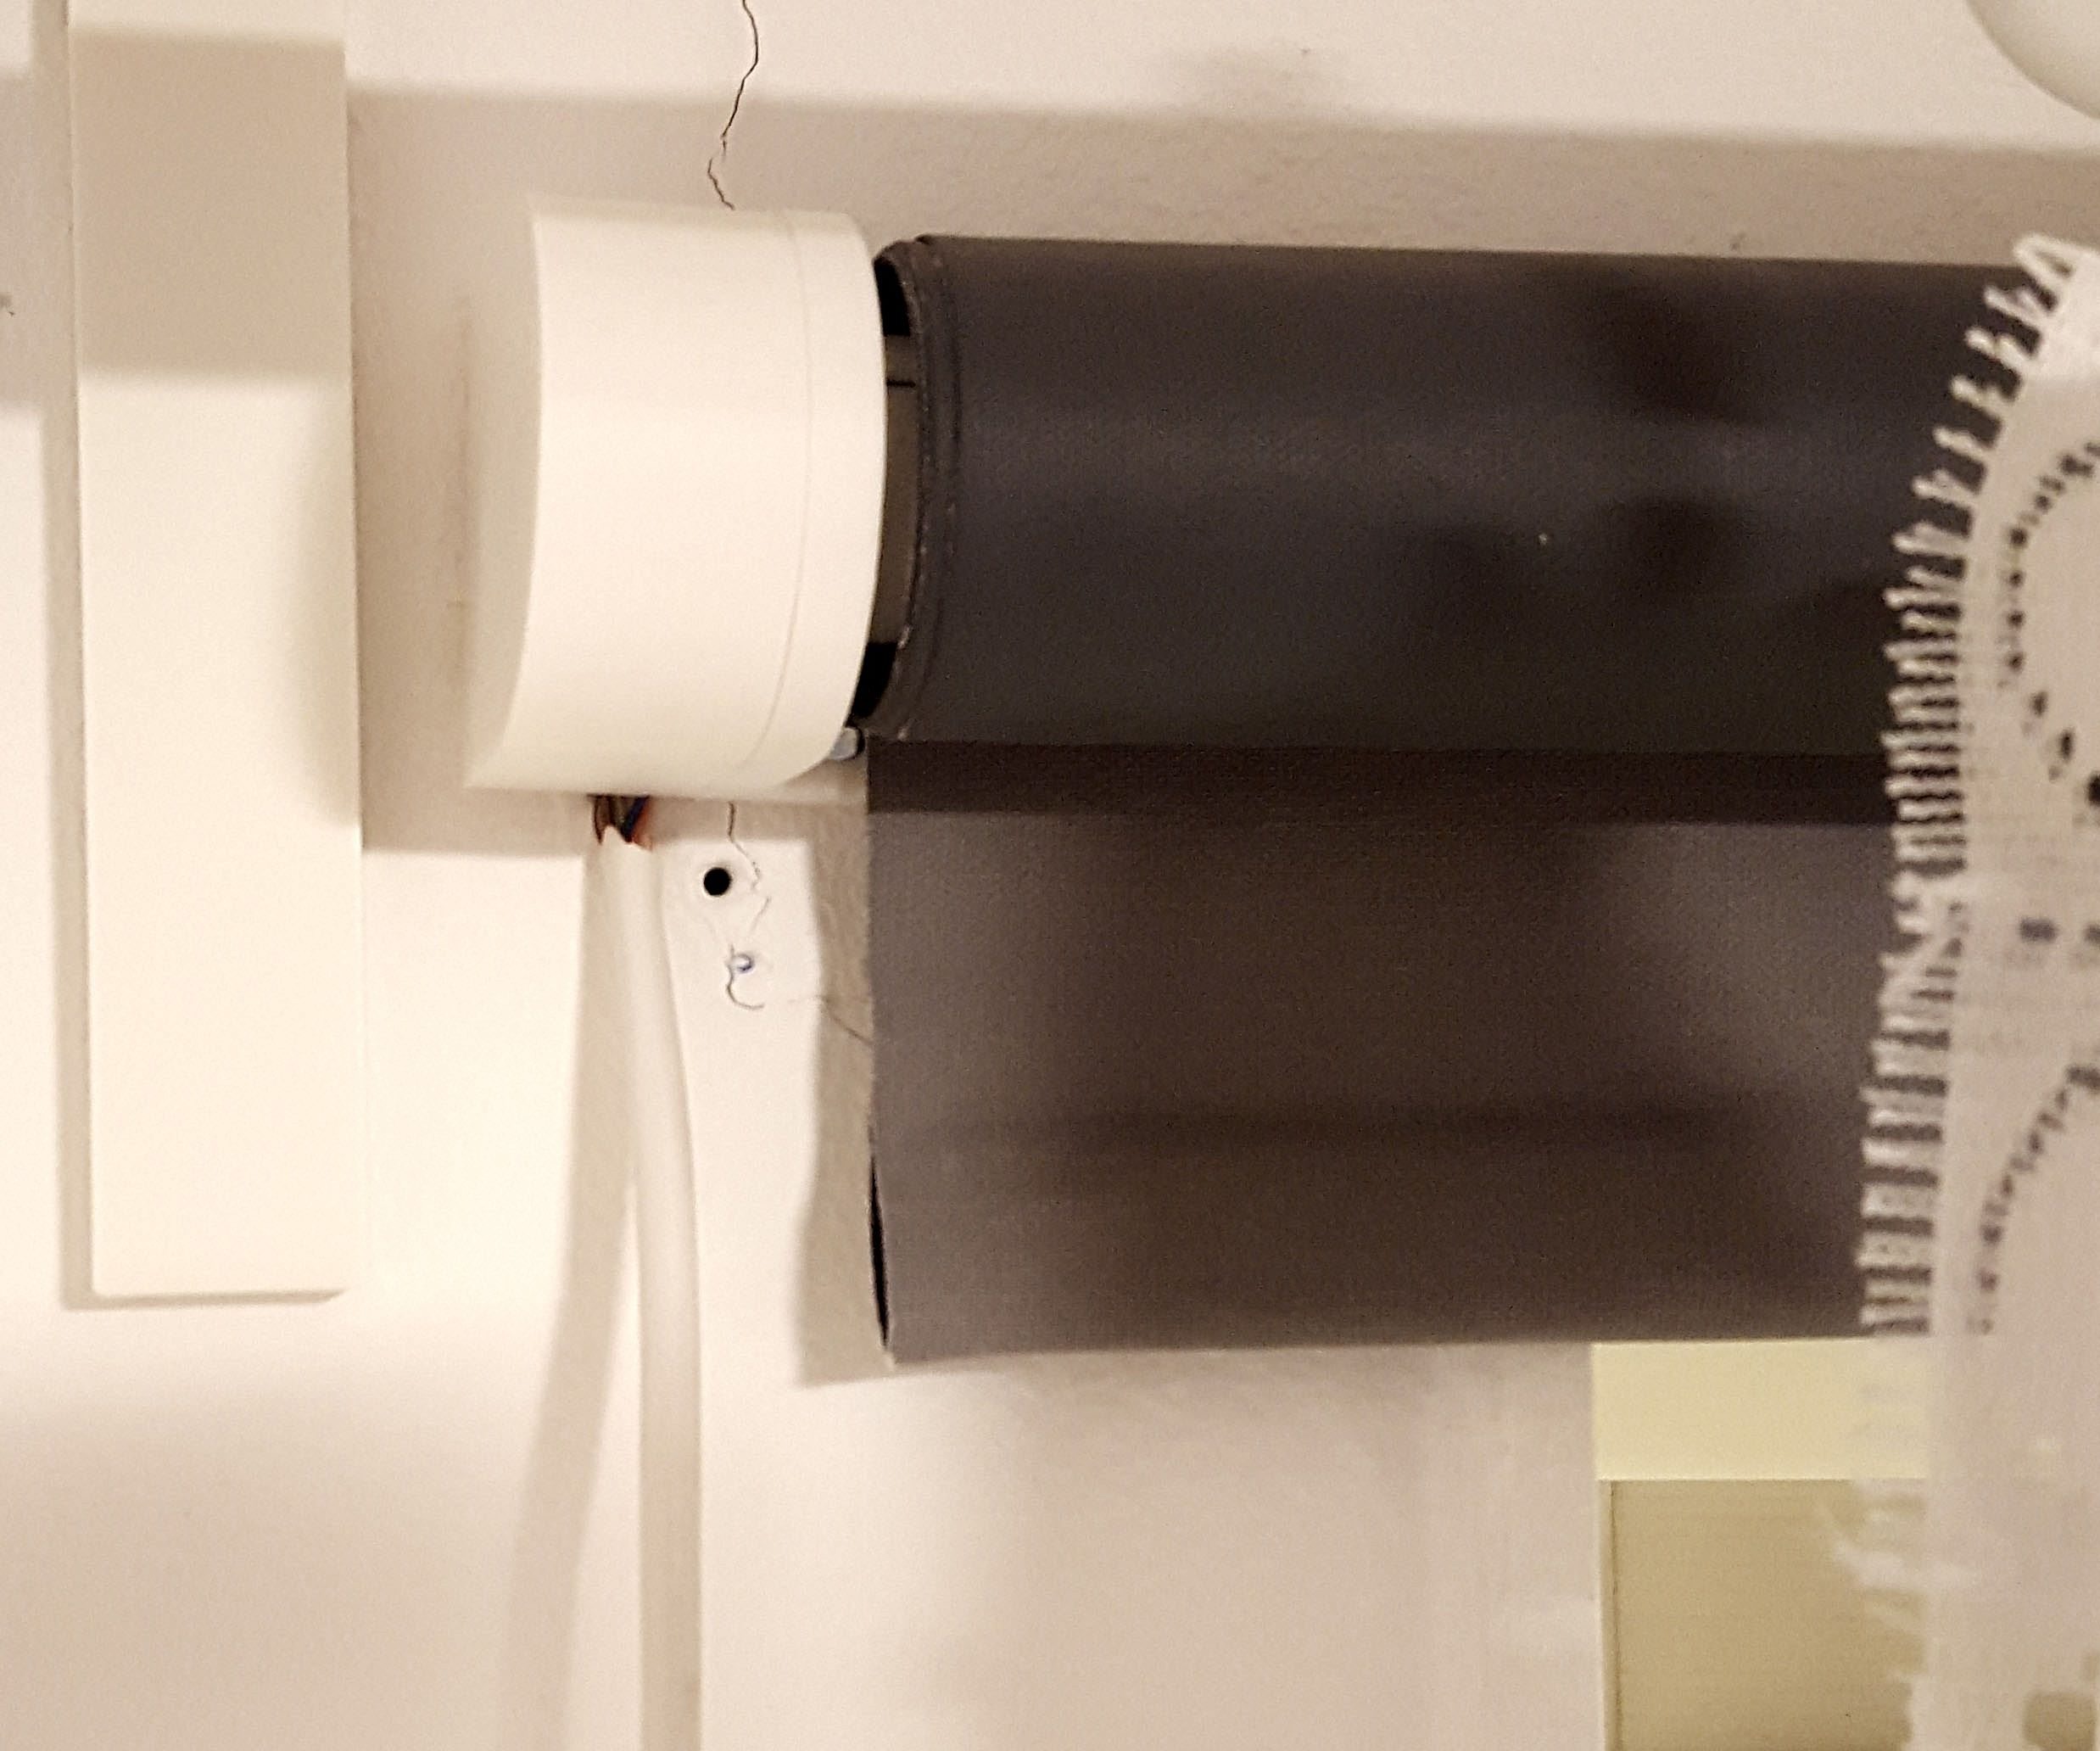 Motorized WiFi IKEA Roller Blind: 11 Steps (with Pictures)